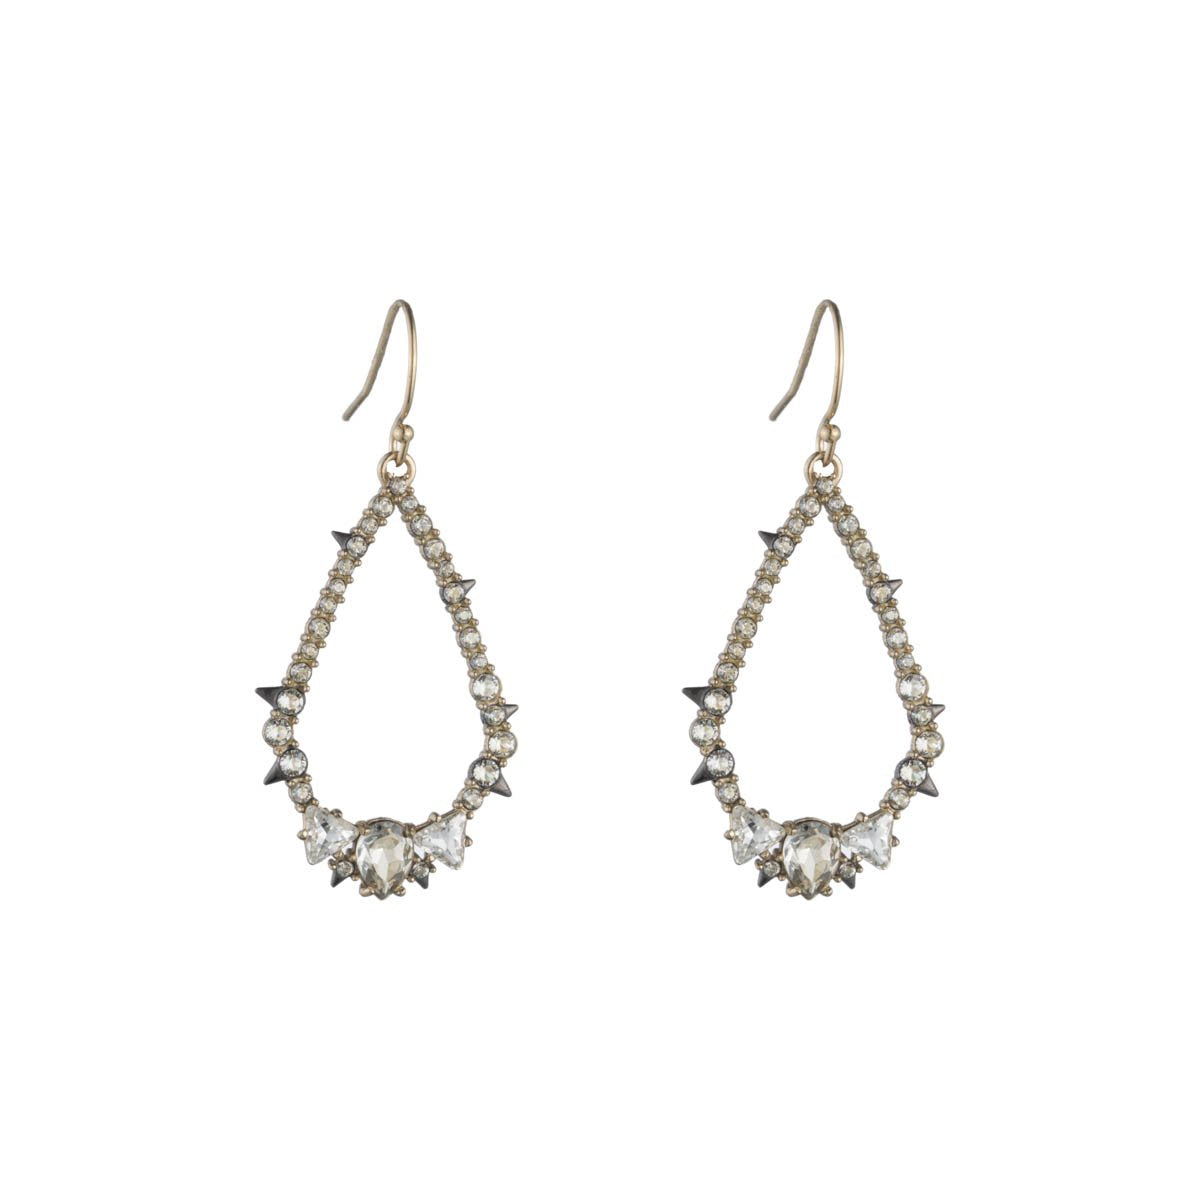 Crystal Encrusted Spiked Tear Earring